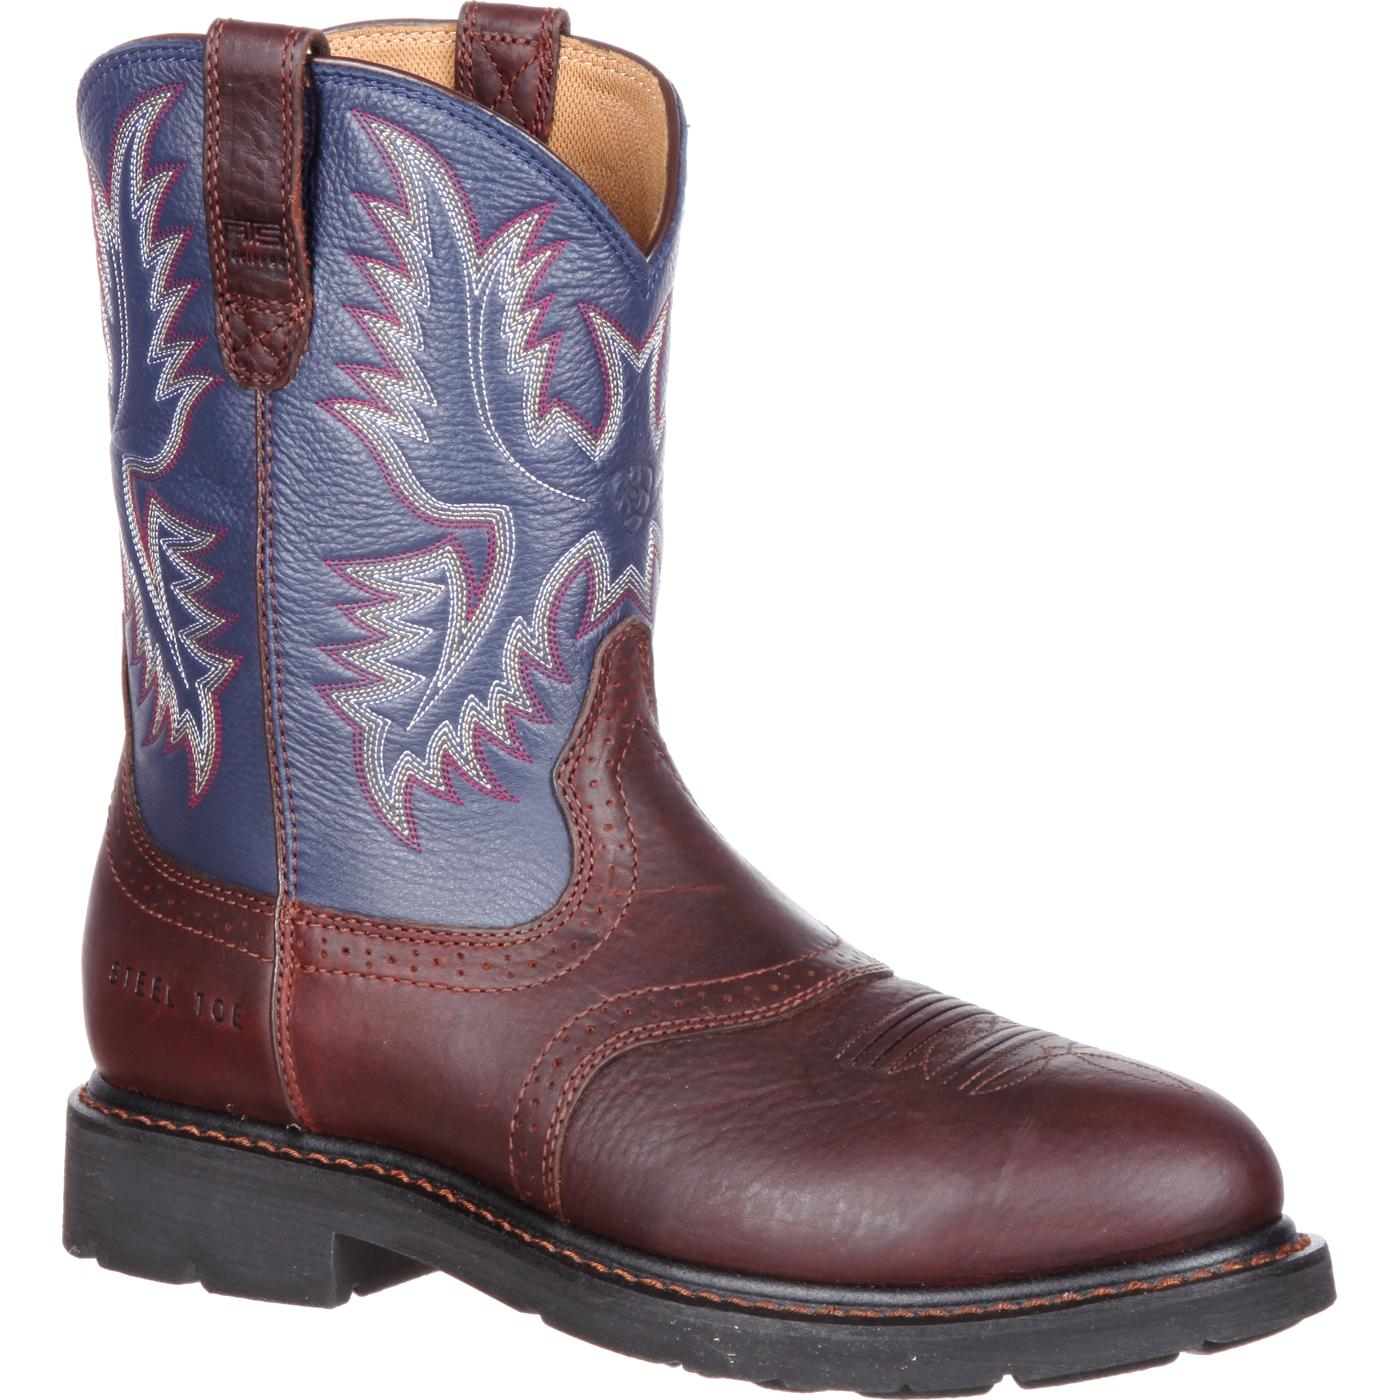 Ariat Sierra Saddle Steel Toe Western Work Boot 10002438